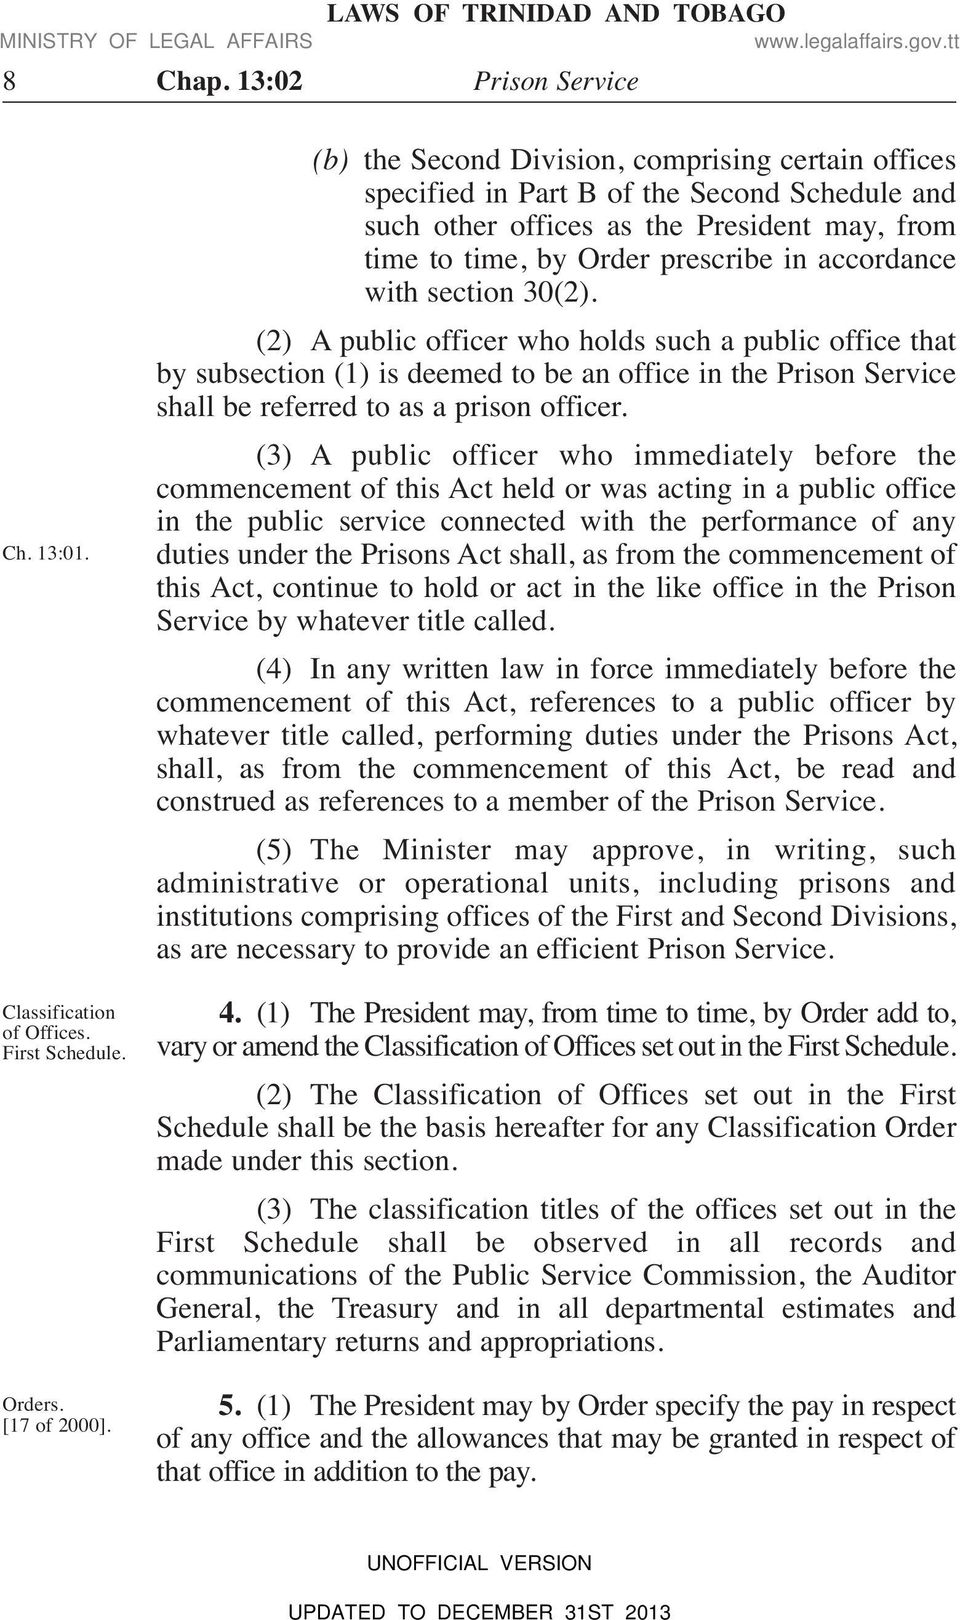 section 30(2). (2) A public officer who holds such a public office that by subsection (1) is deemed to be an office in the Prison Service shall be referred to as a prison officer.